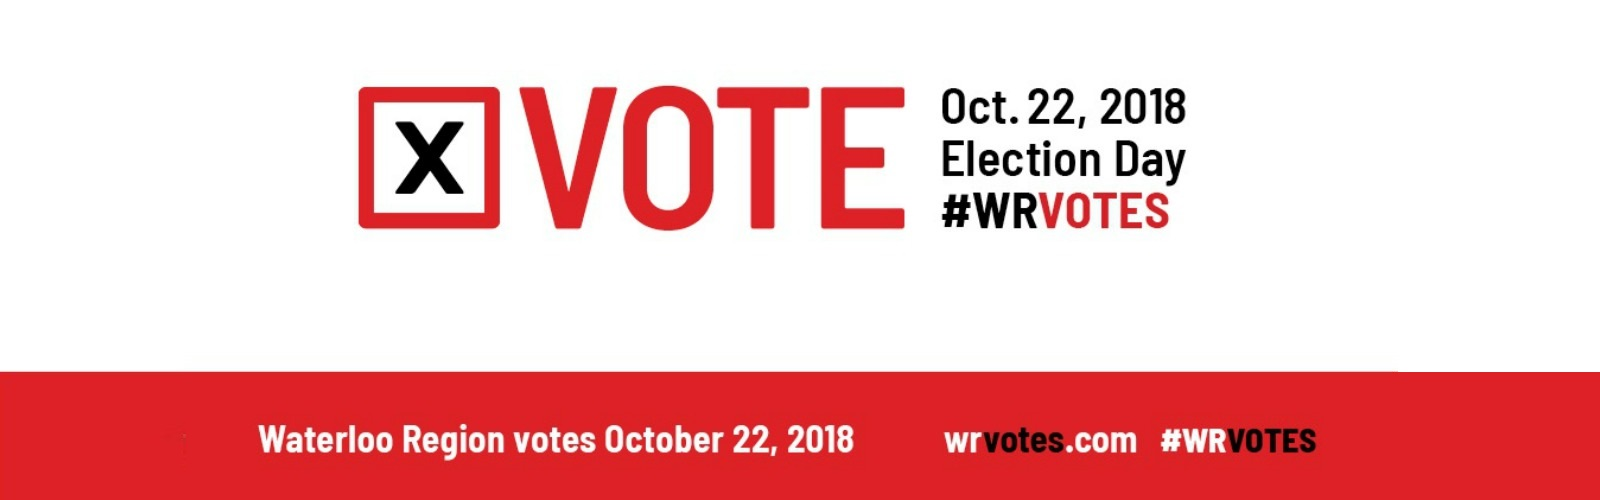 Vote in the October 22, 2018 municipal election in Waterloo Region